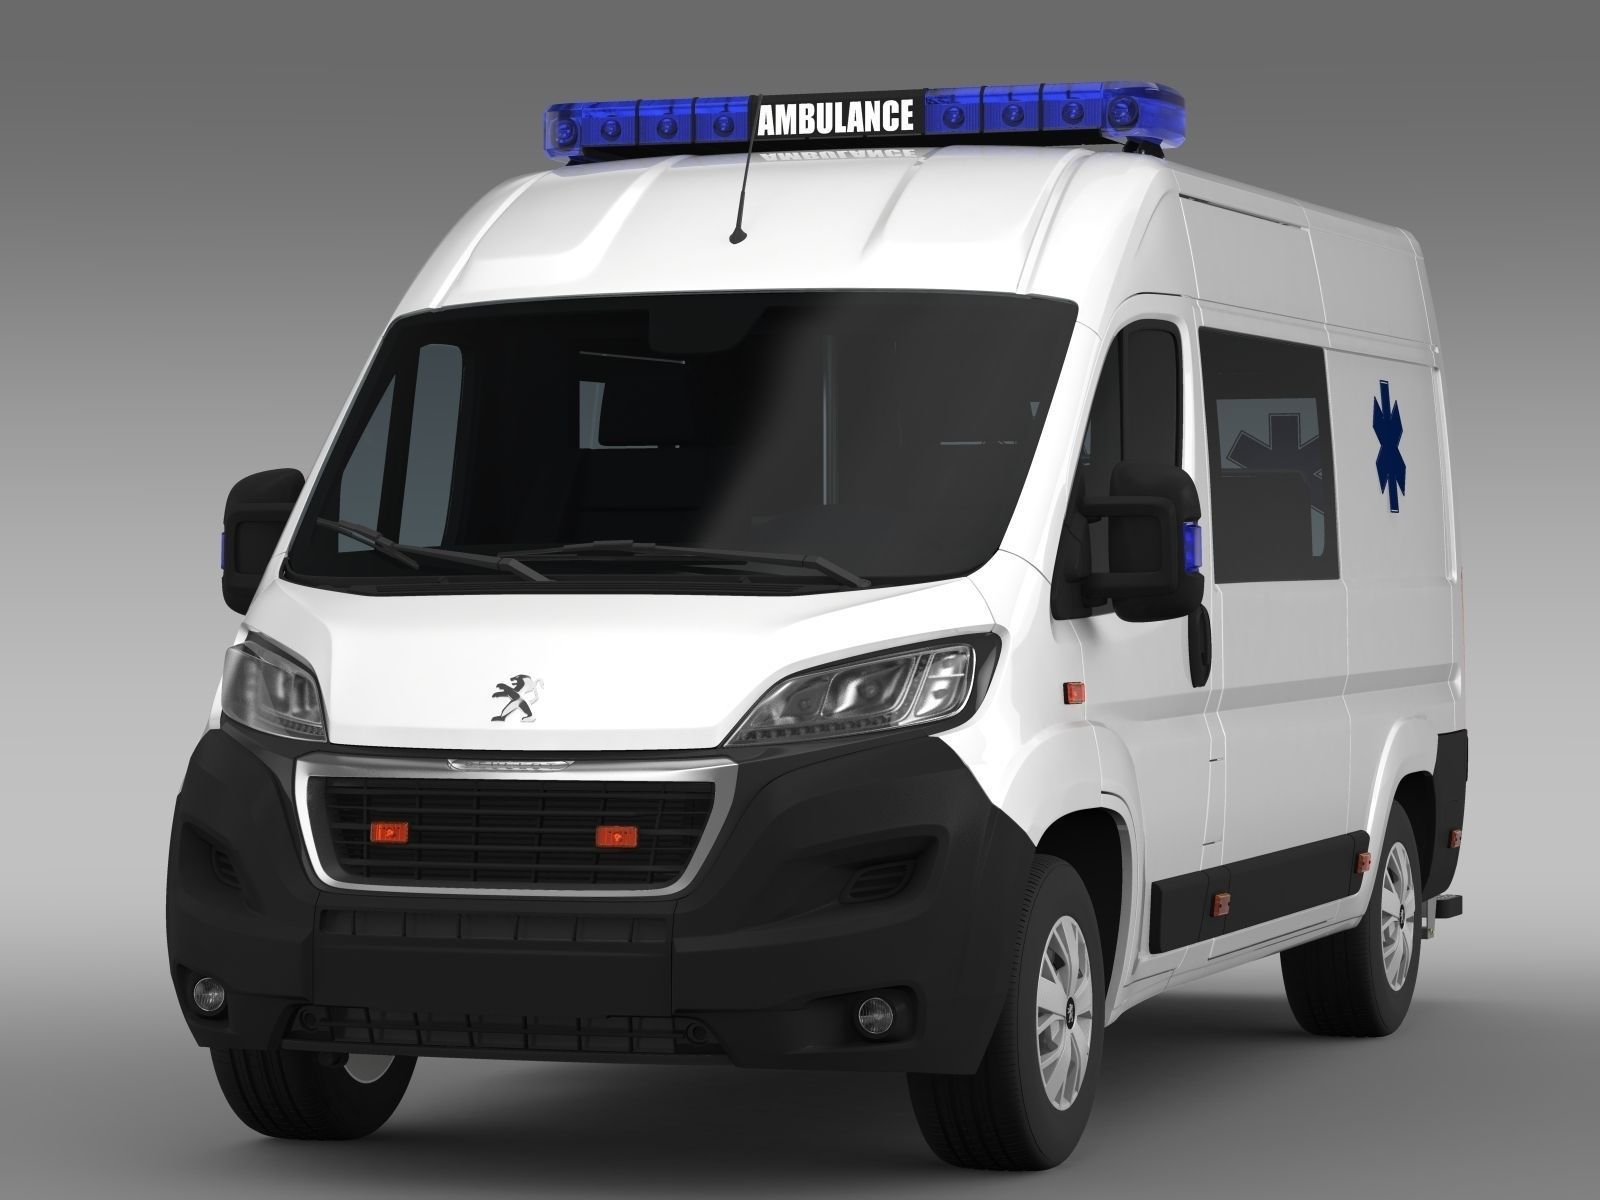 peugeot boxer van ambulance 2015 3d model max obj 3ds fbx c4d lwo lw lws. Black Bedroom Furniture Sets. Home Design Ideas